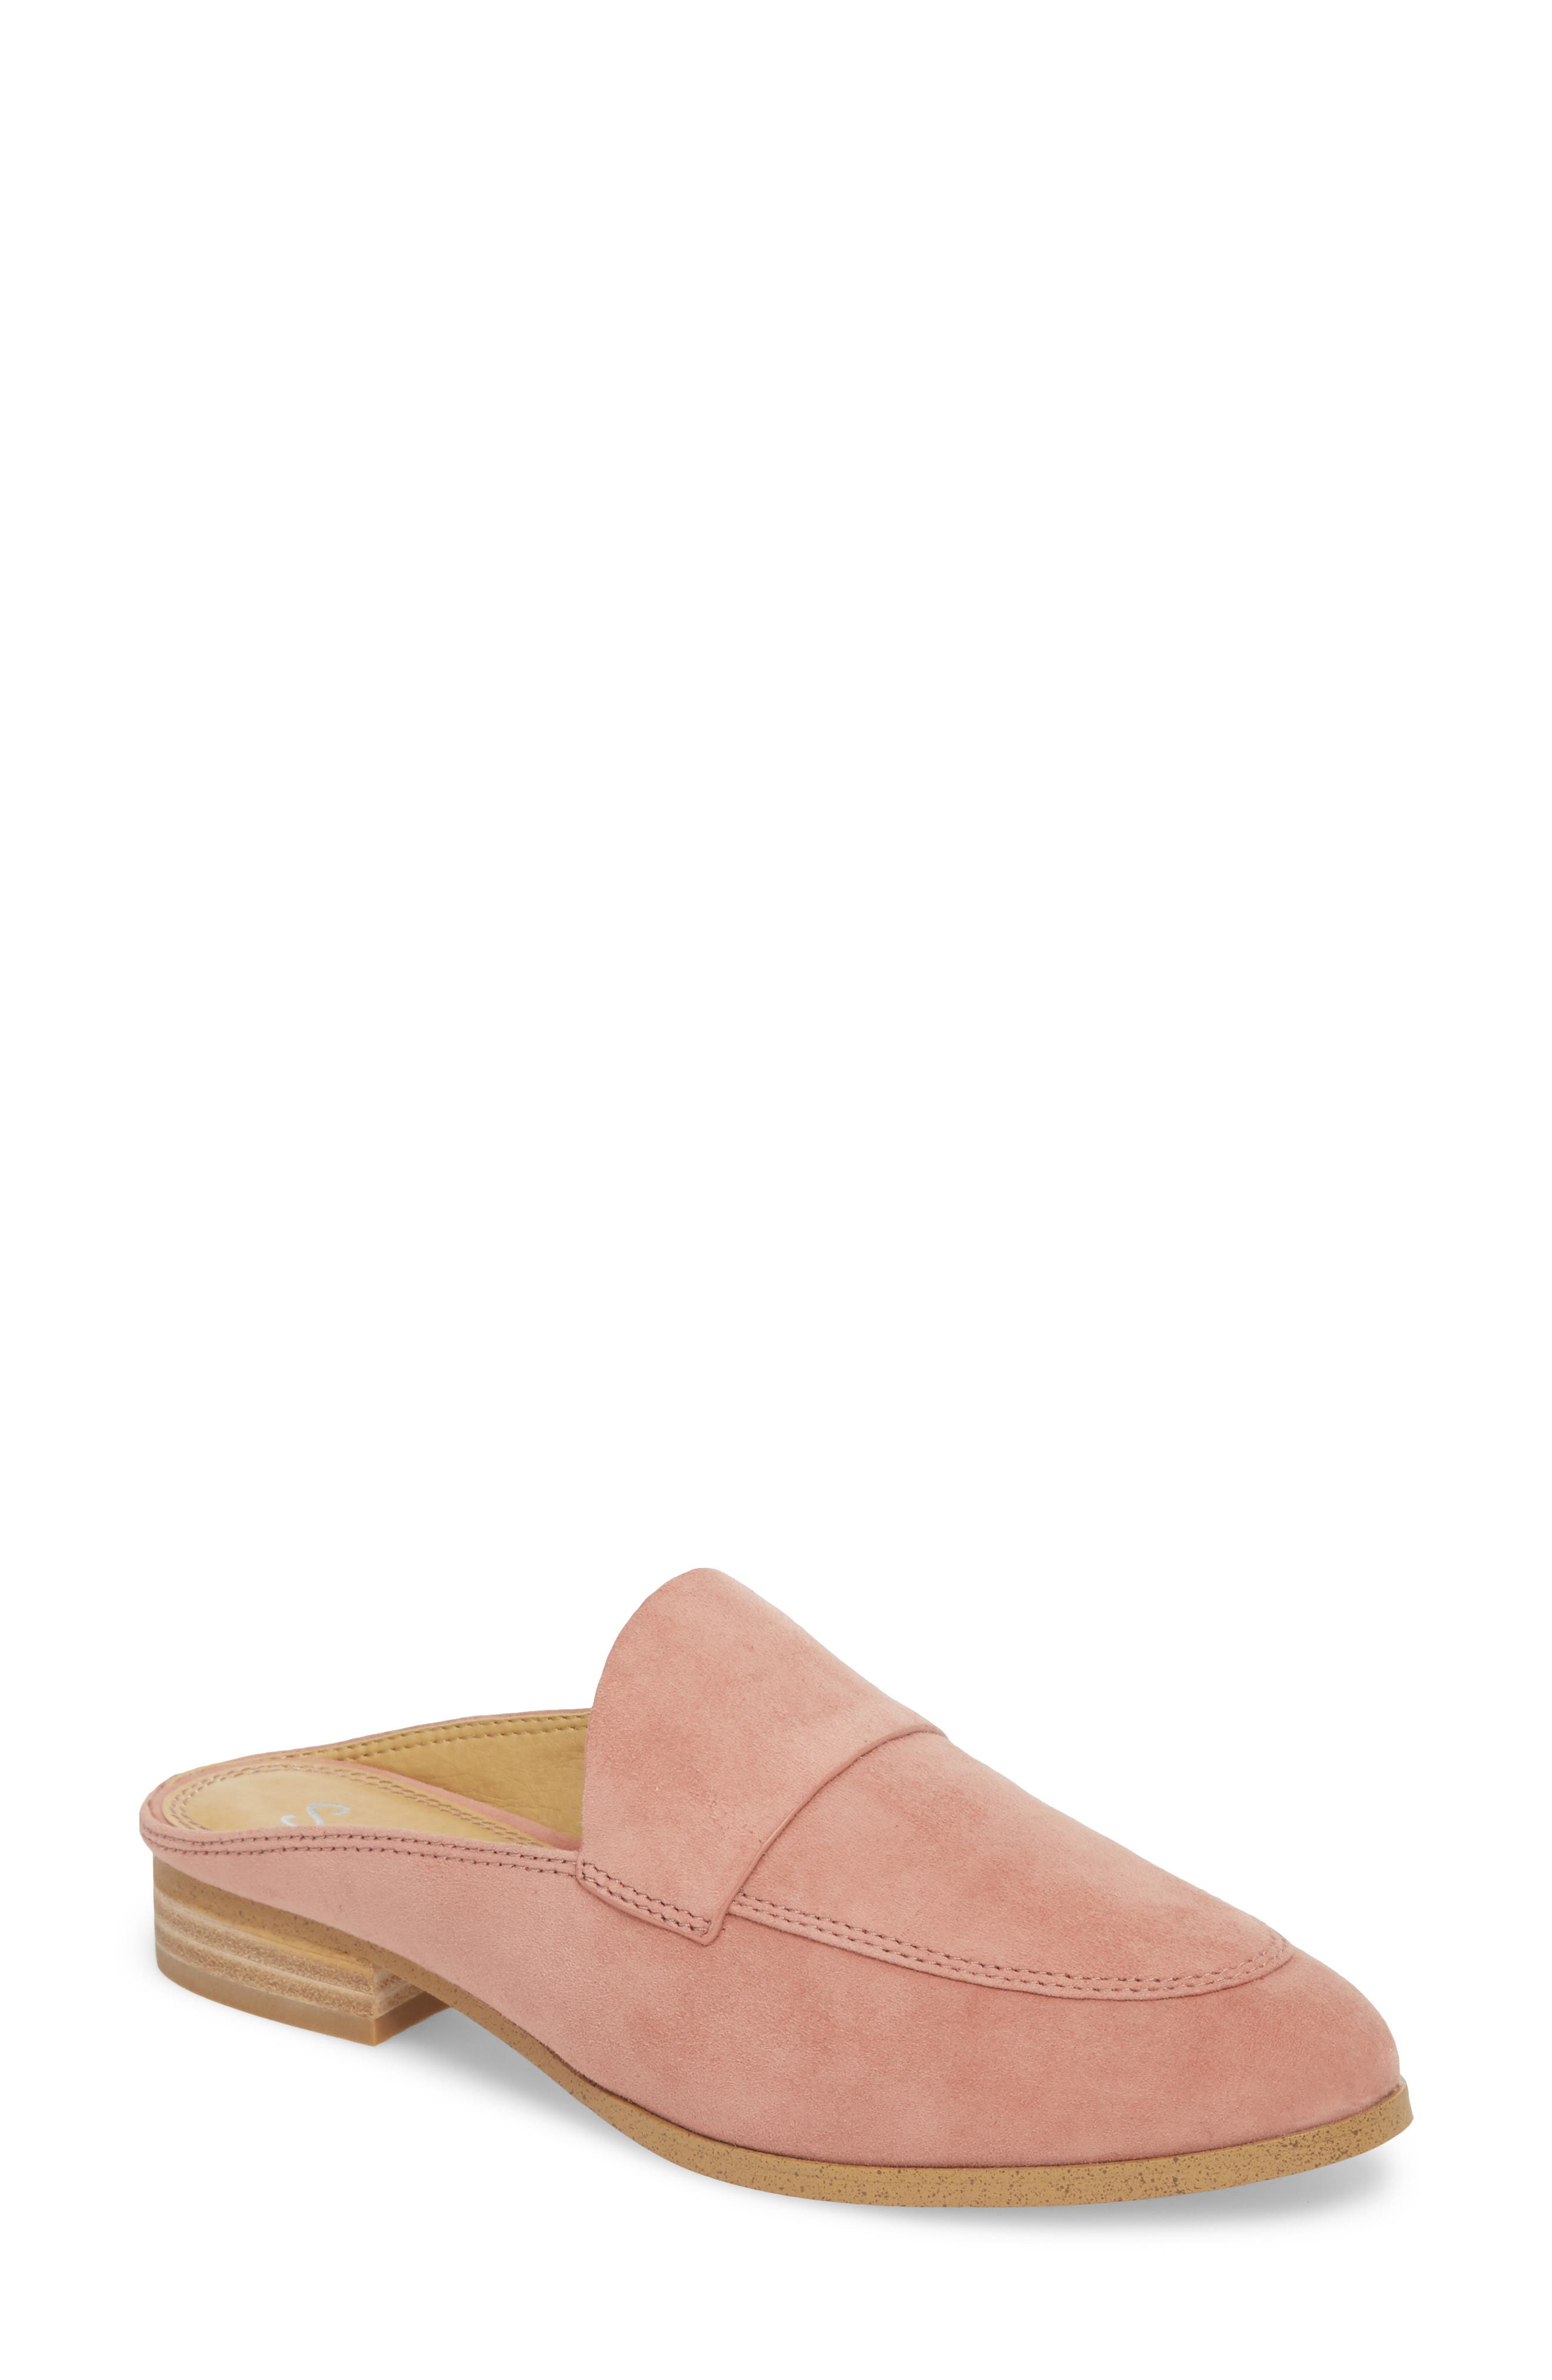 Nima Loafer Mule,                             Main thumbnail 1, color,                             ROSE TAUPE SUEDE